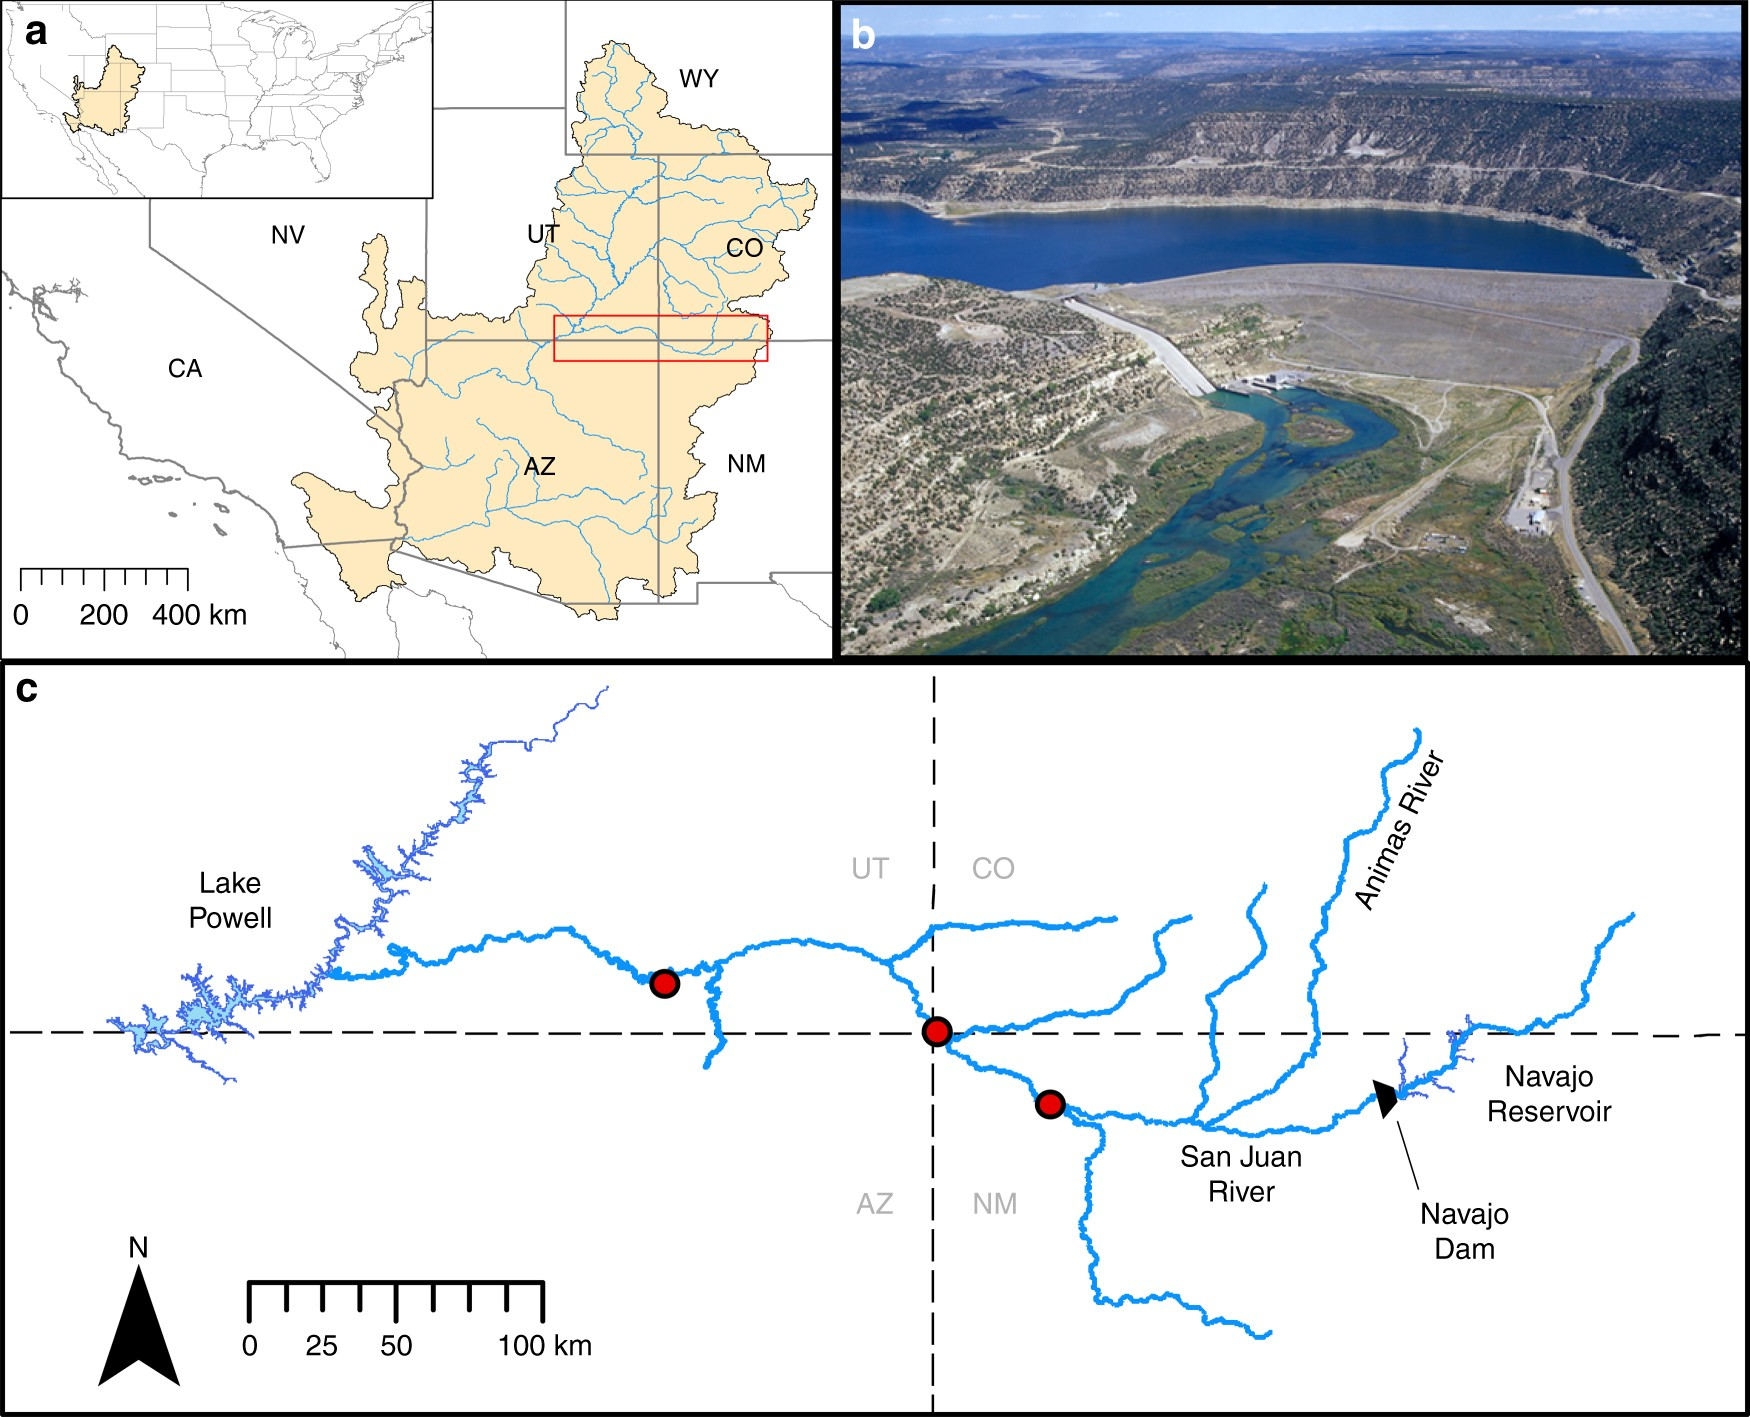 Designing flows to resolve human and environmental water needs in a